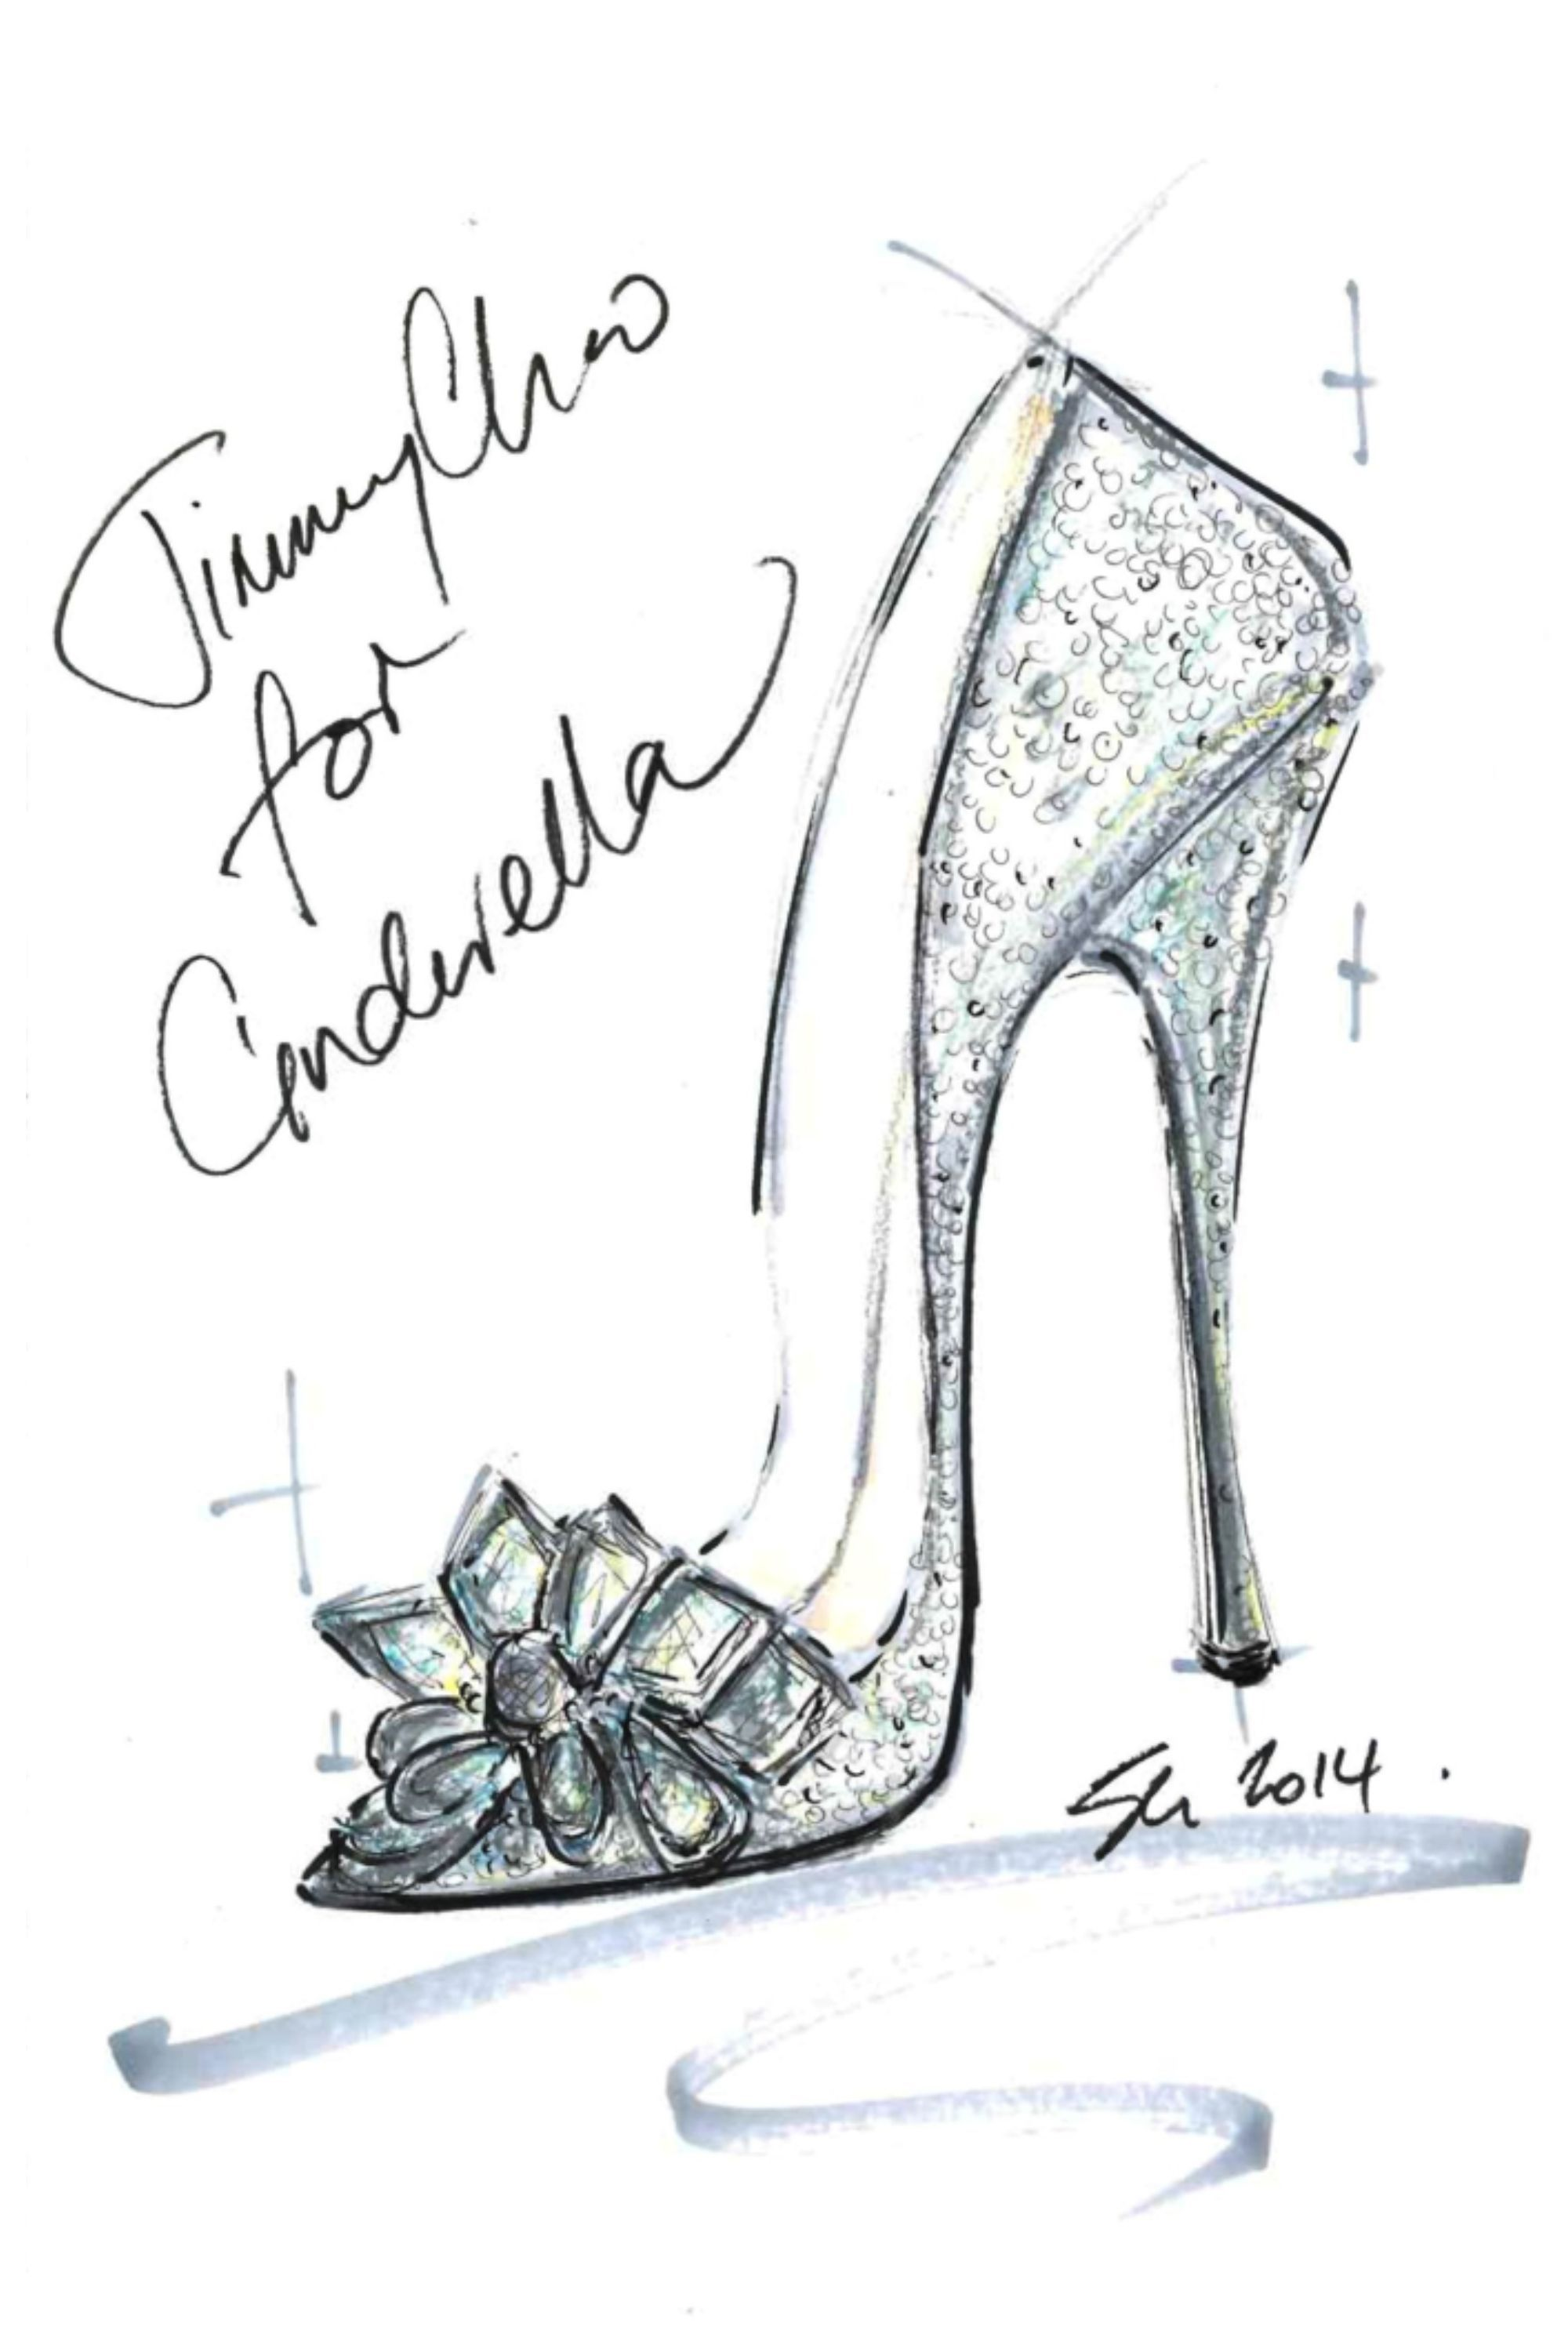 I Think Every Girl Desires A Cinderella Moment In Their Lives